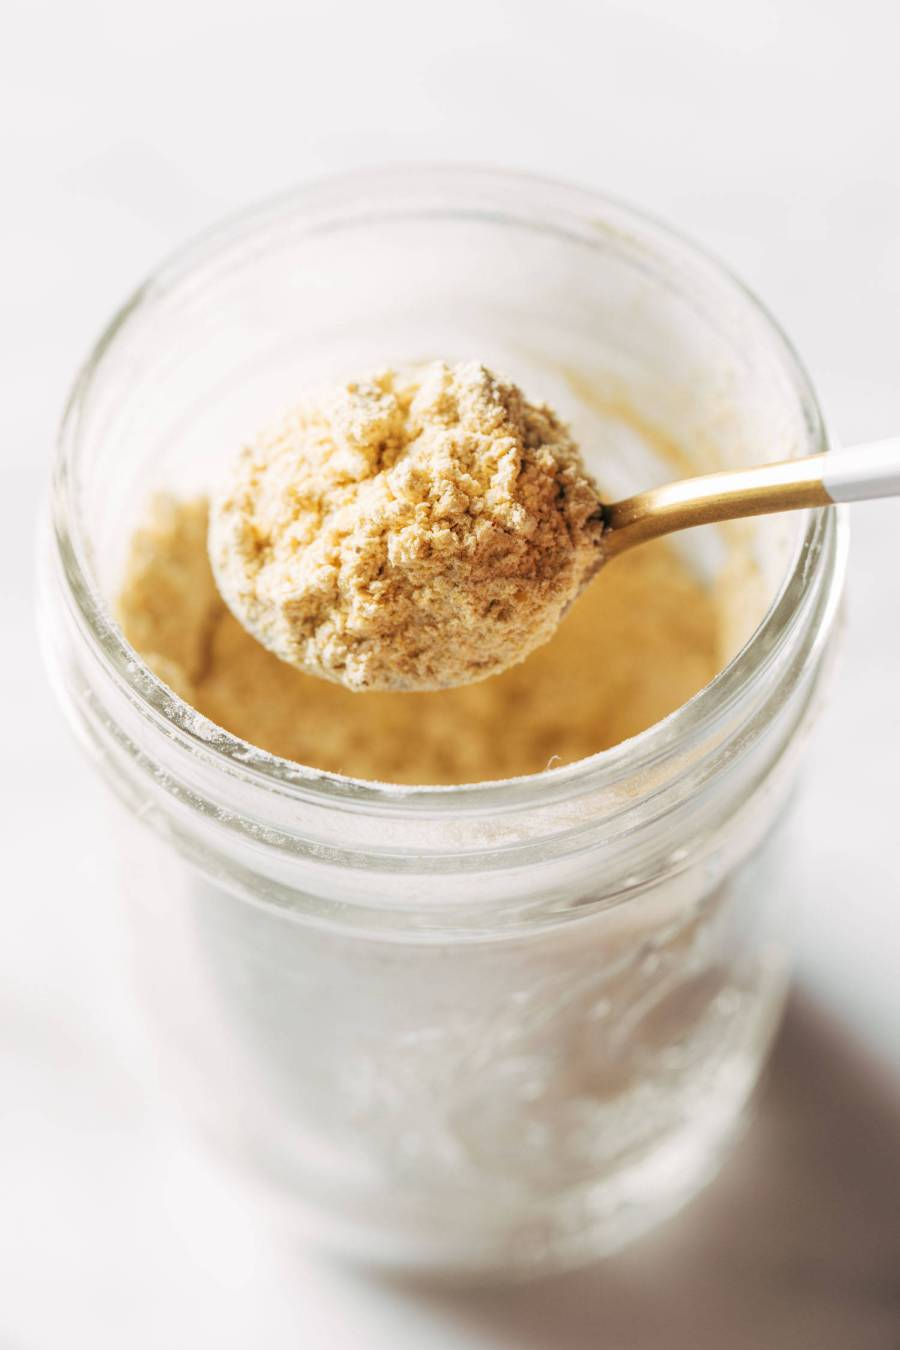 Vegan cheese powder being scooped with a spoon.